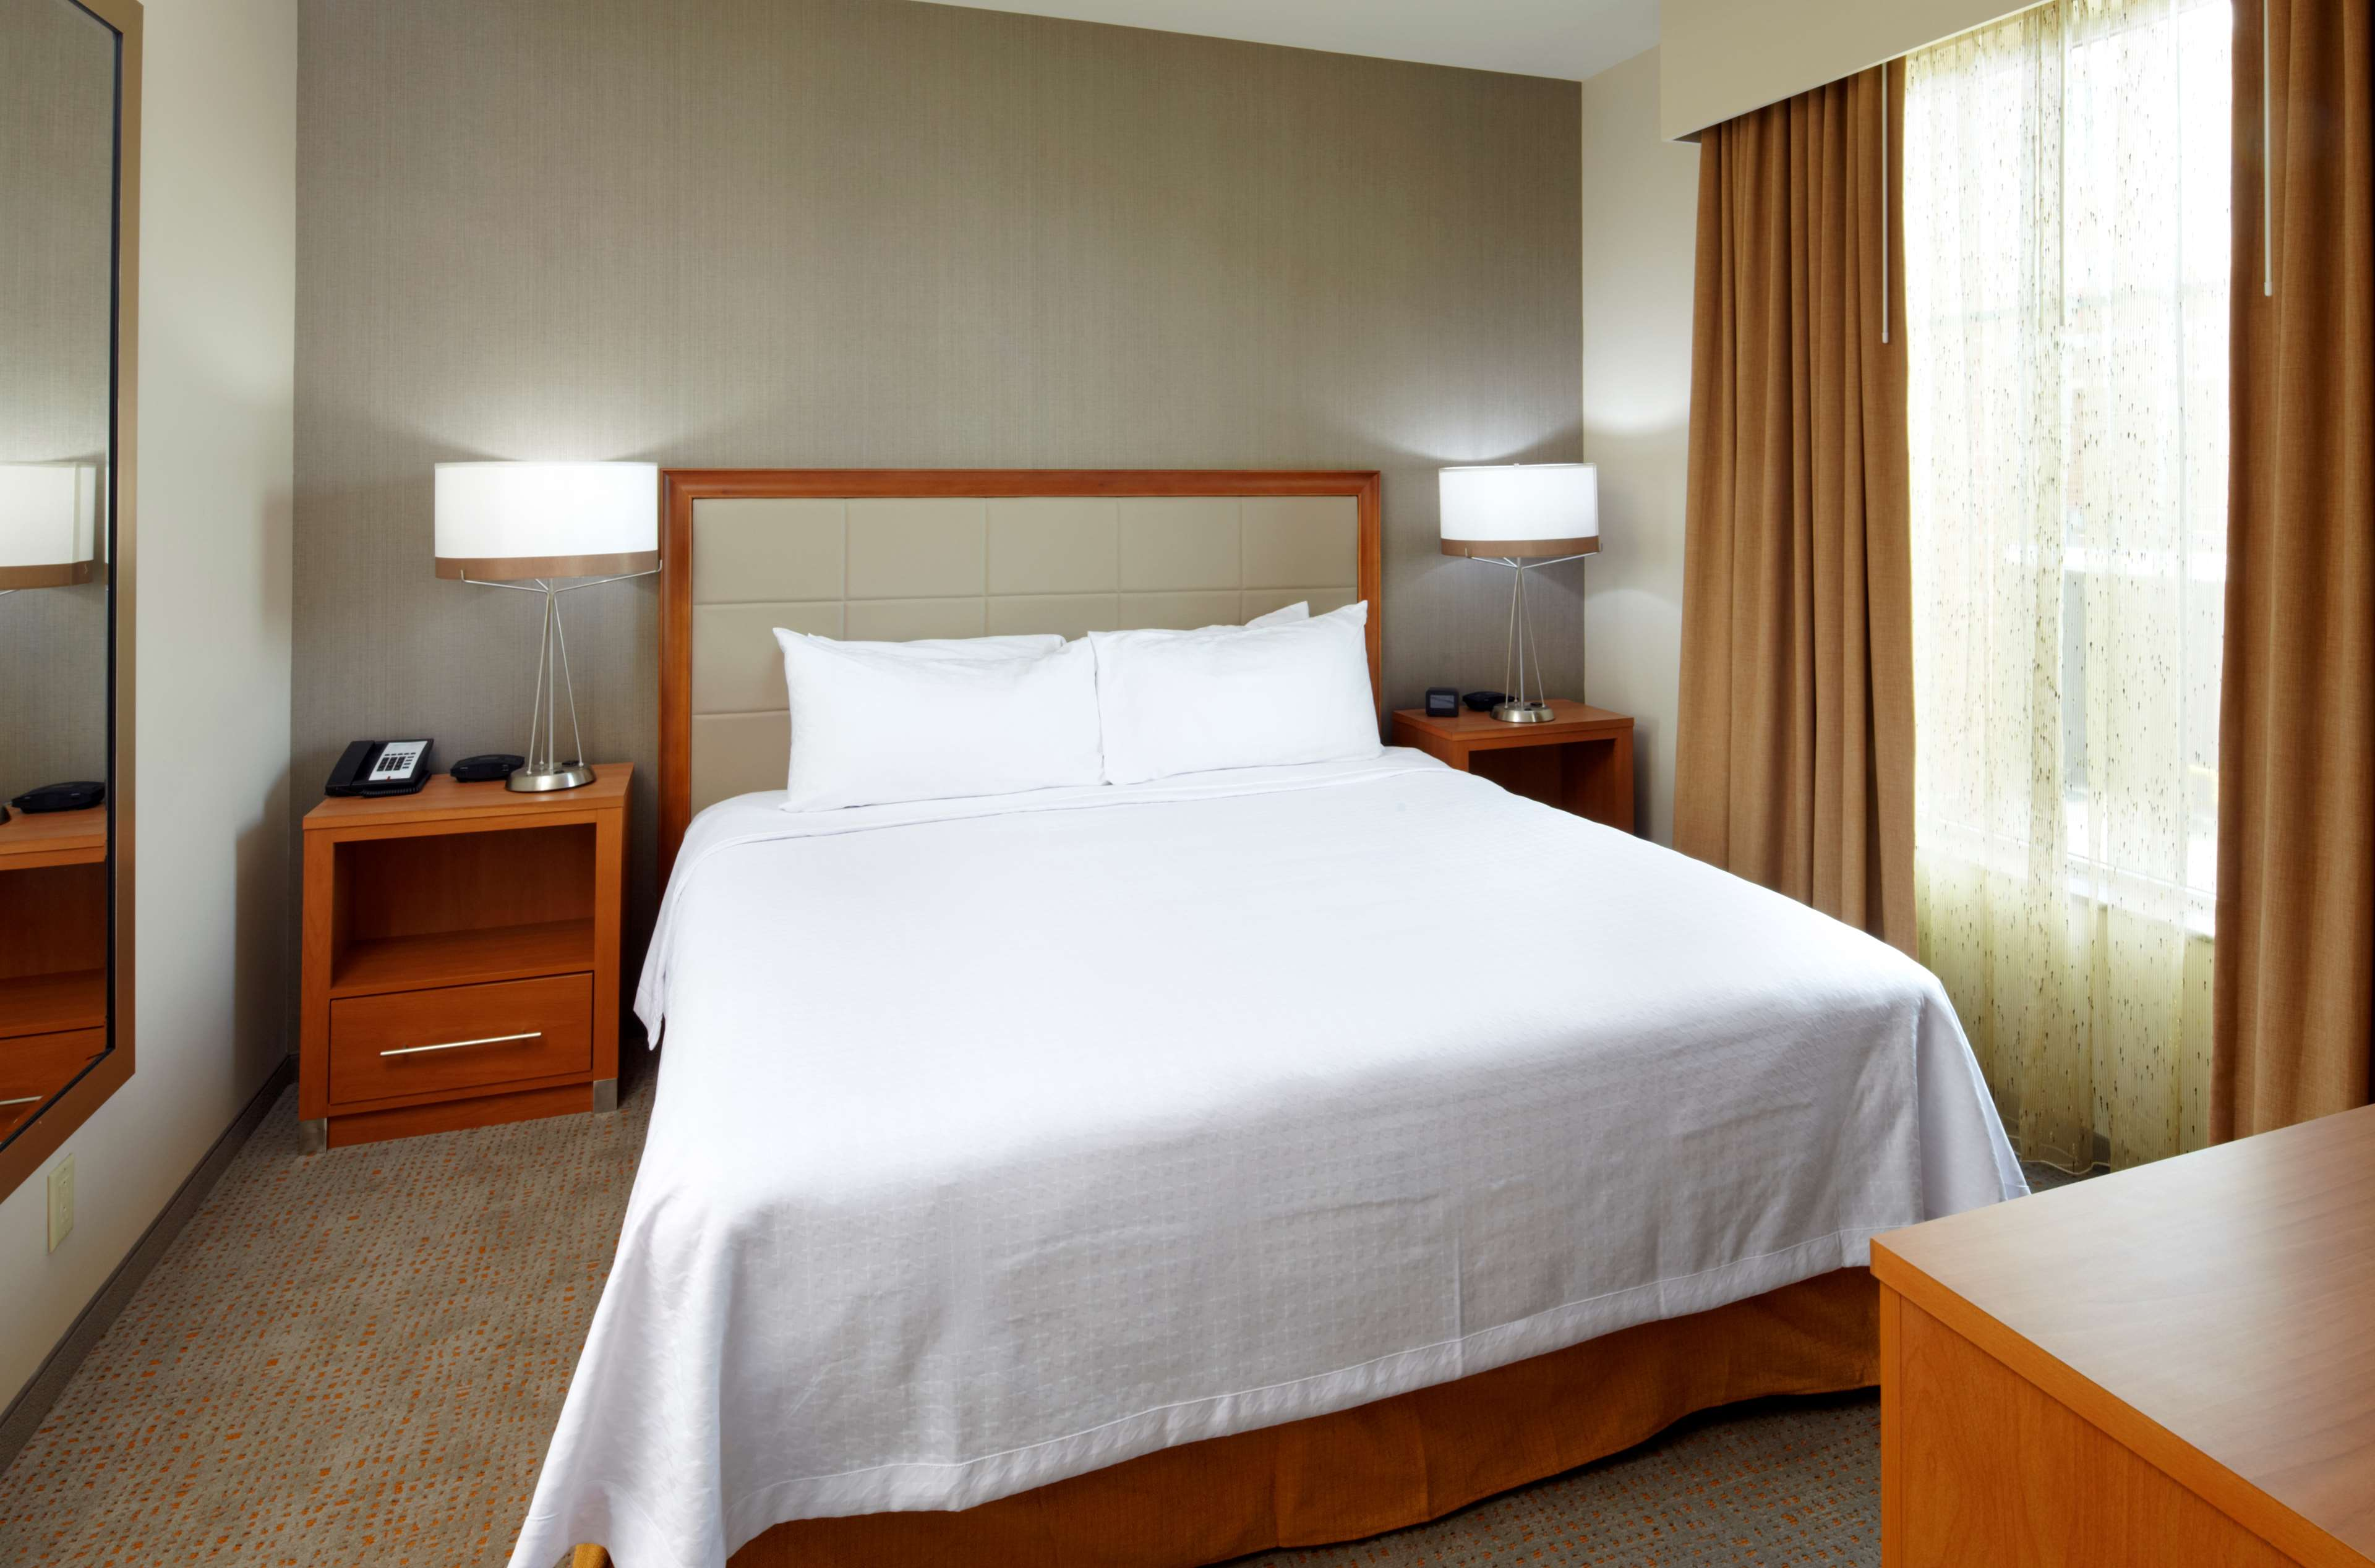 Homewood Suites by Hilton Pittsburgh Airport Robinson Mall Area PA image 21